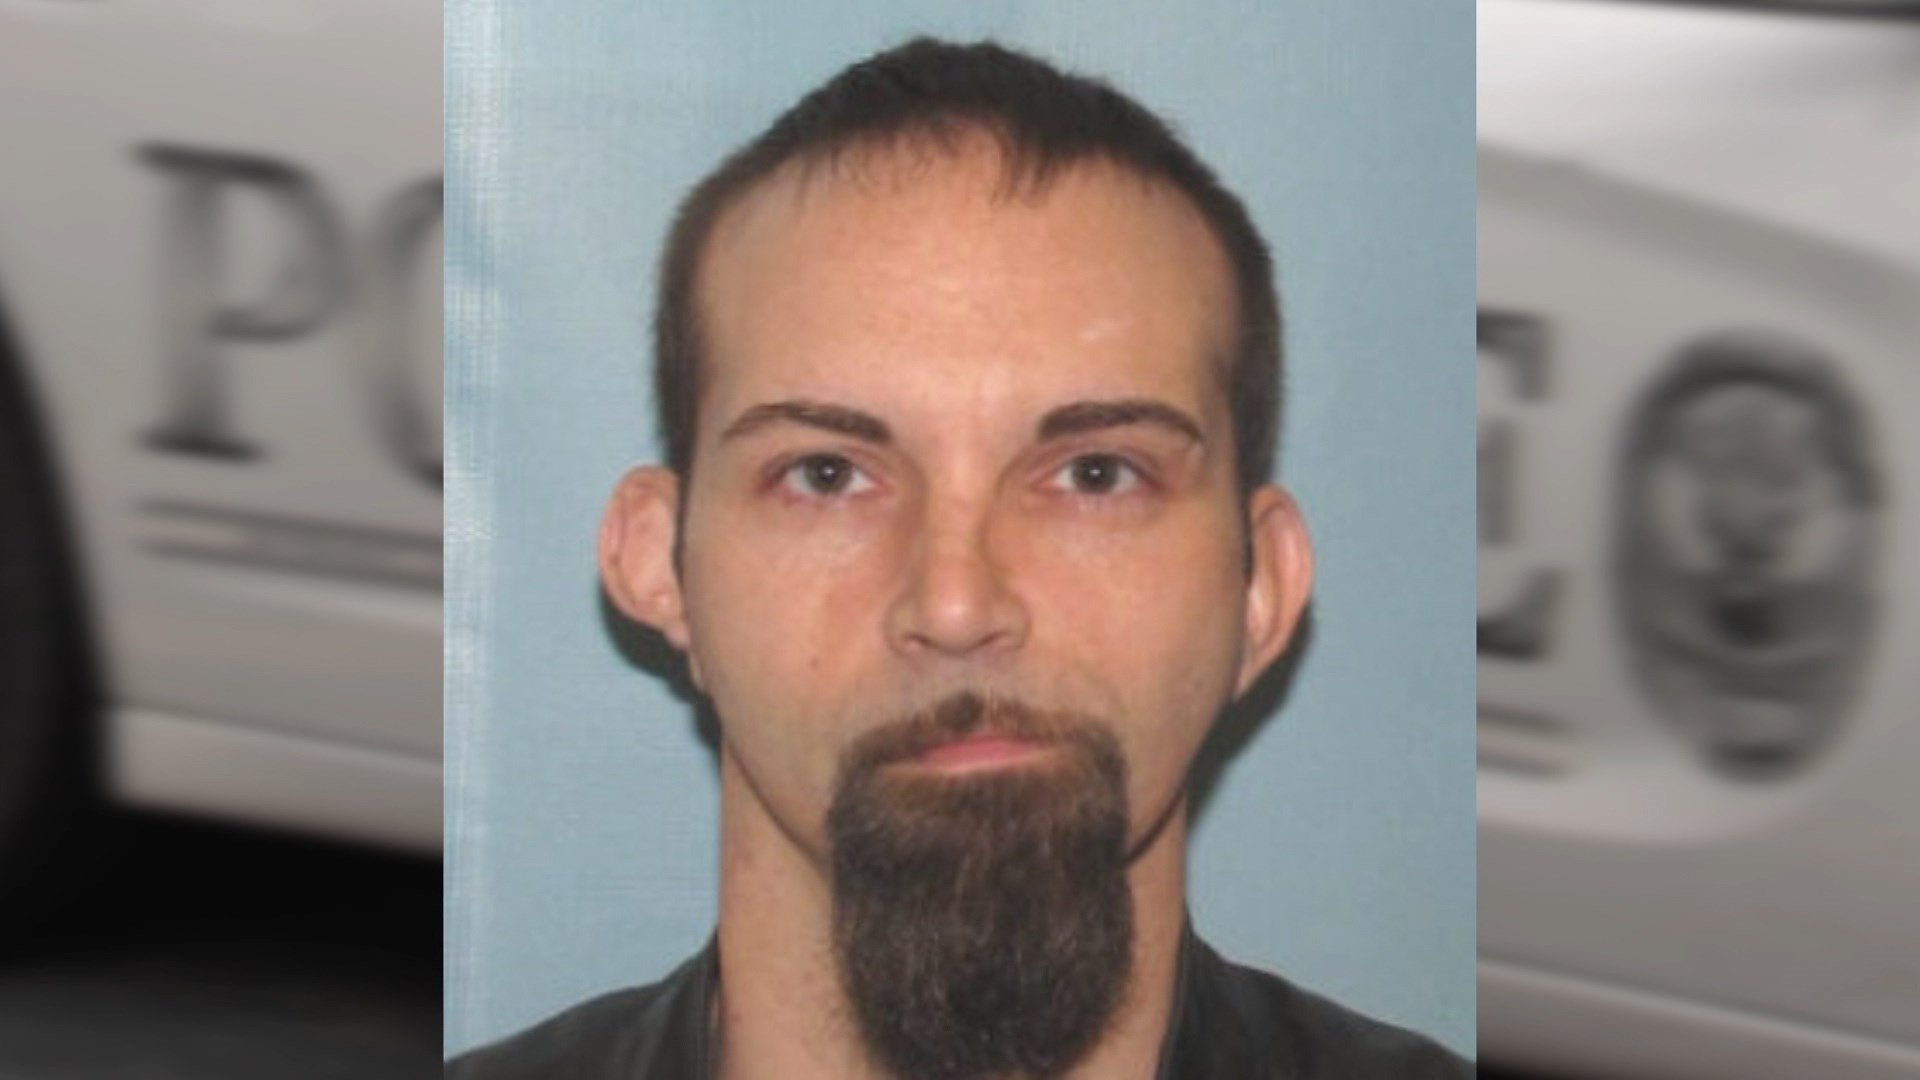 Ohio Man Charged With Killing Baby Seeks New Venue For